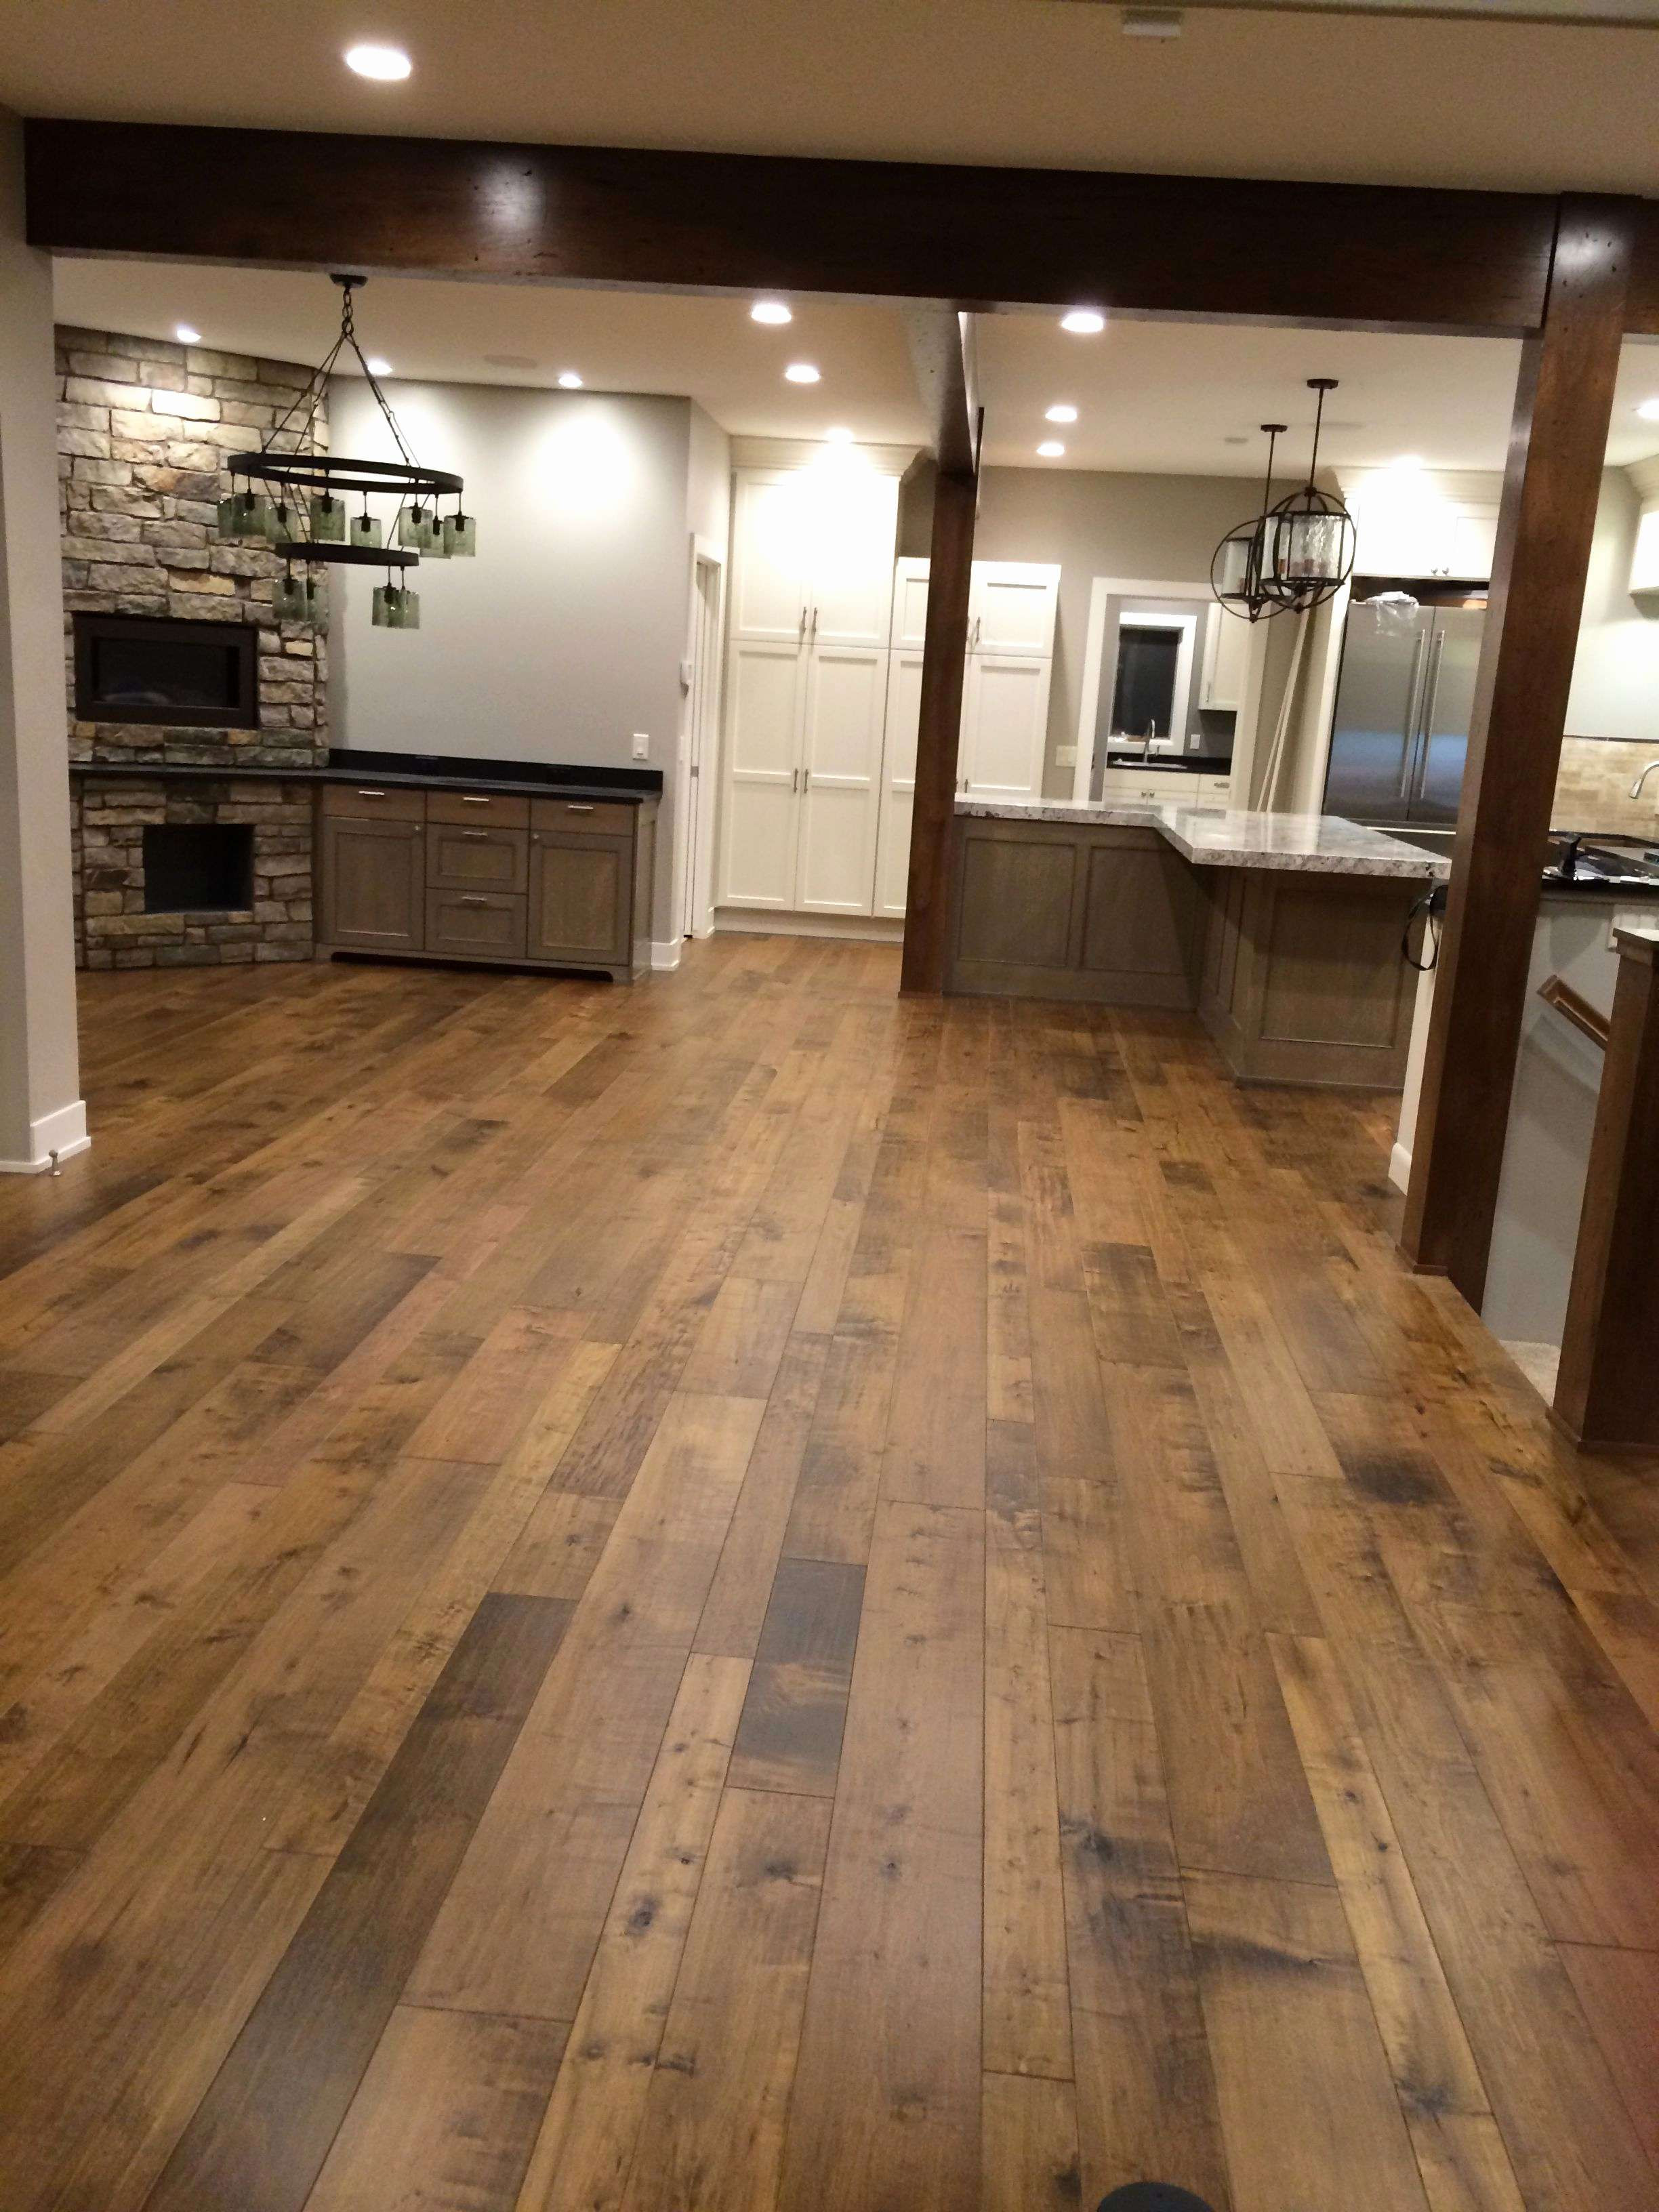 hardwood floor refinishing okc of 21 best images of hardwood flooring images for home plan cottage pertaining to hardwood flooring images elegant 50 beautiful hardwood floor designs 50 s